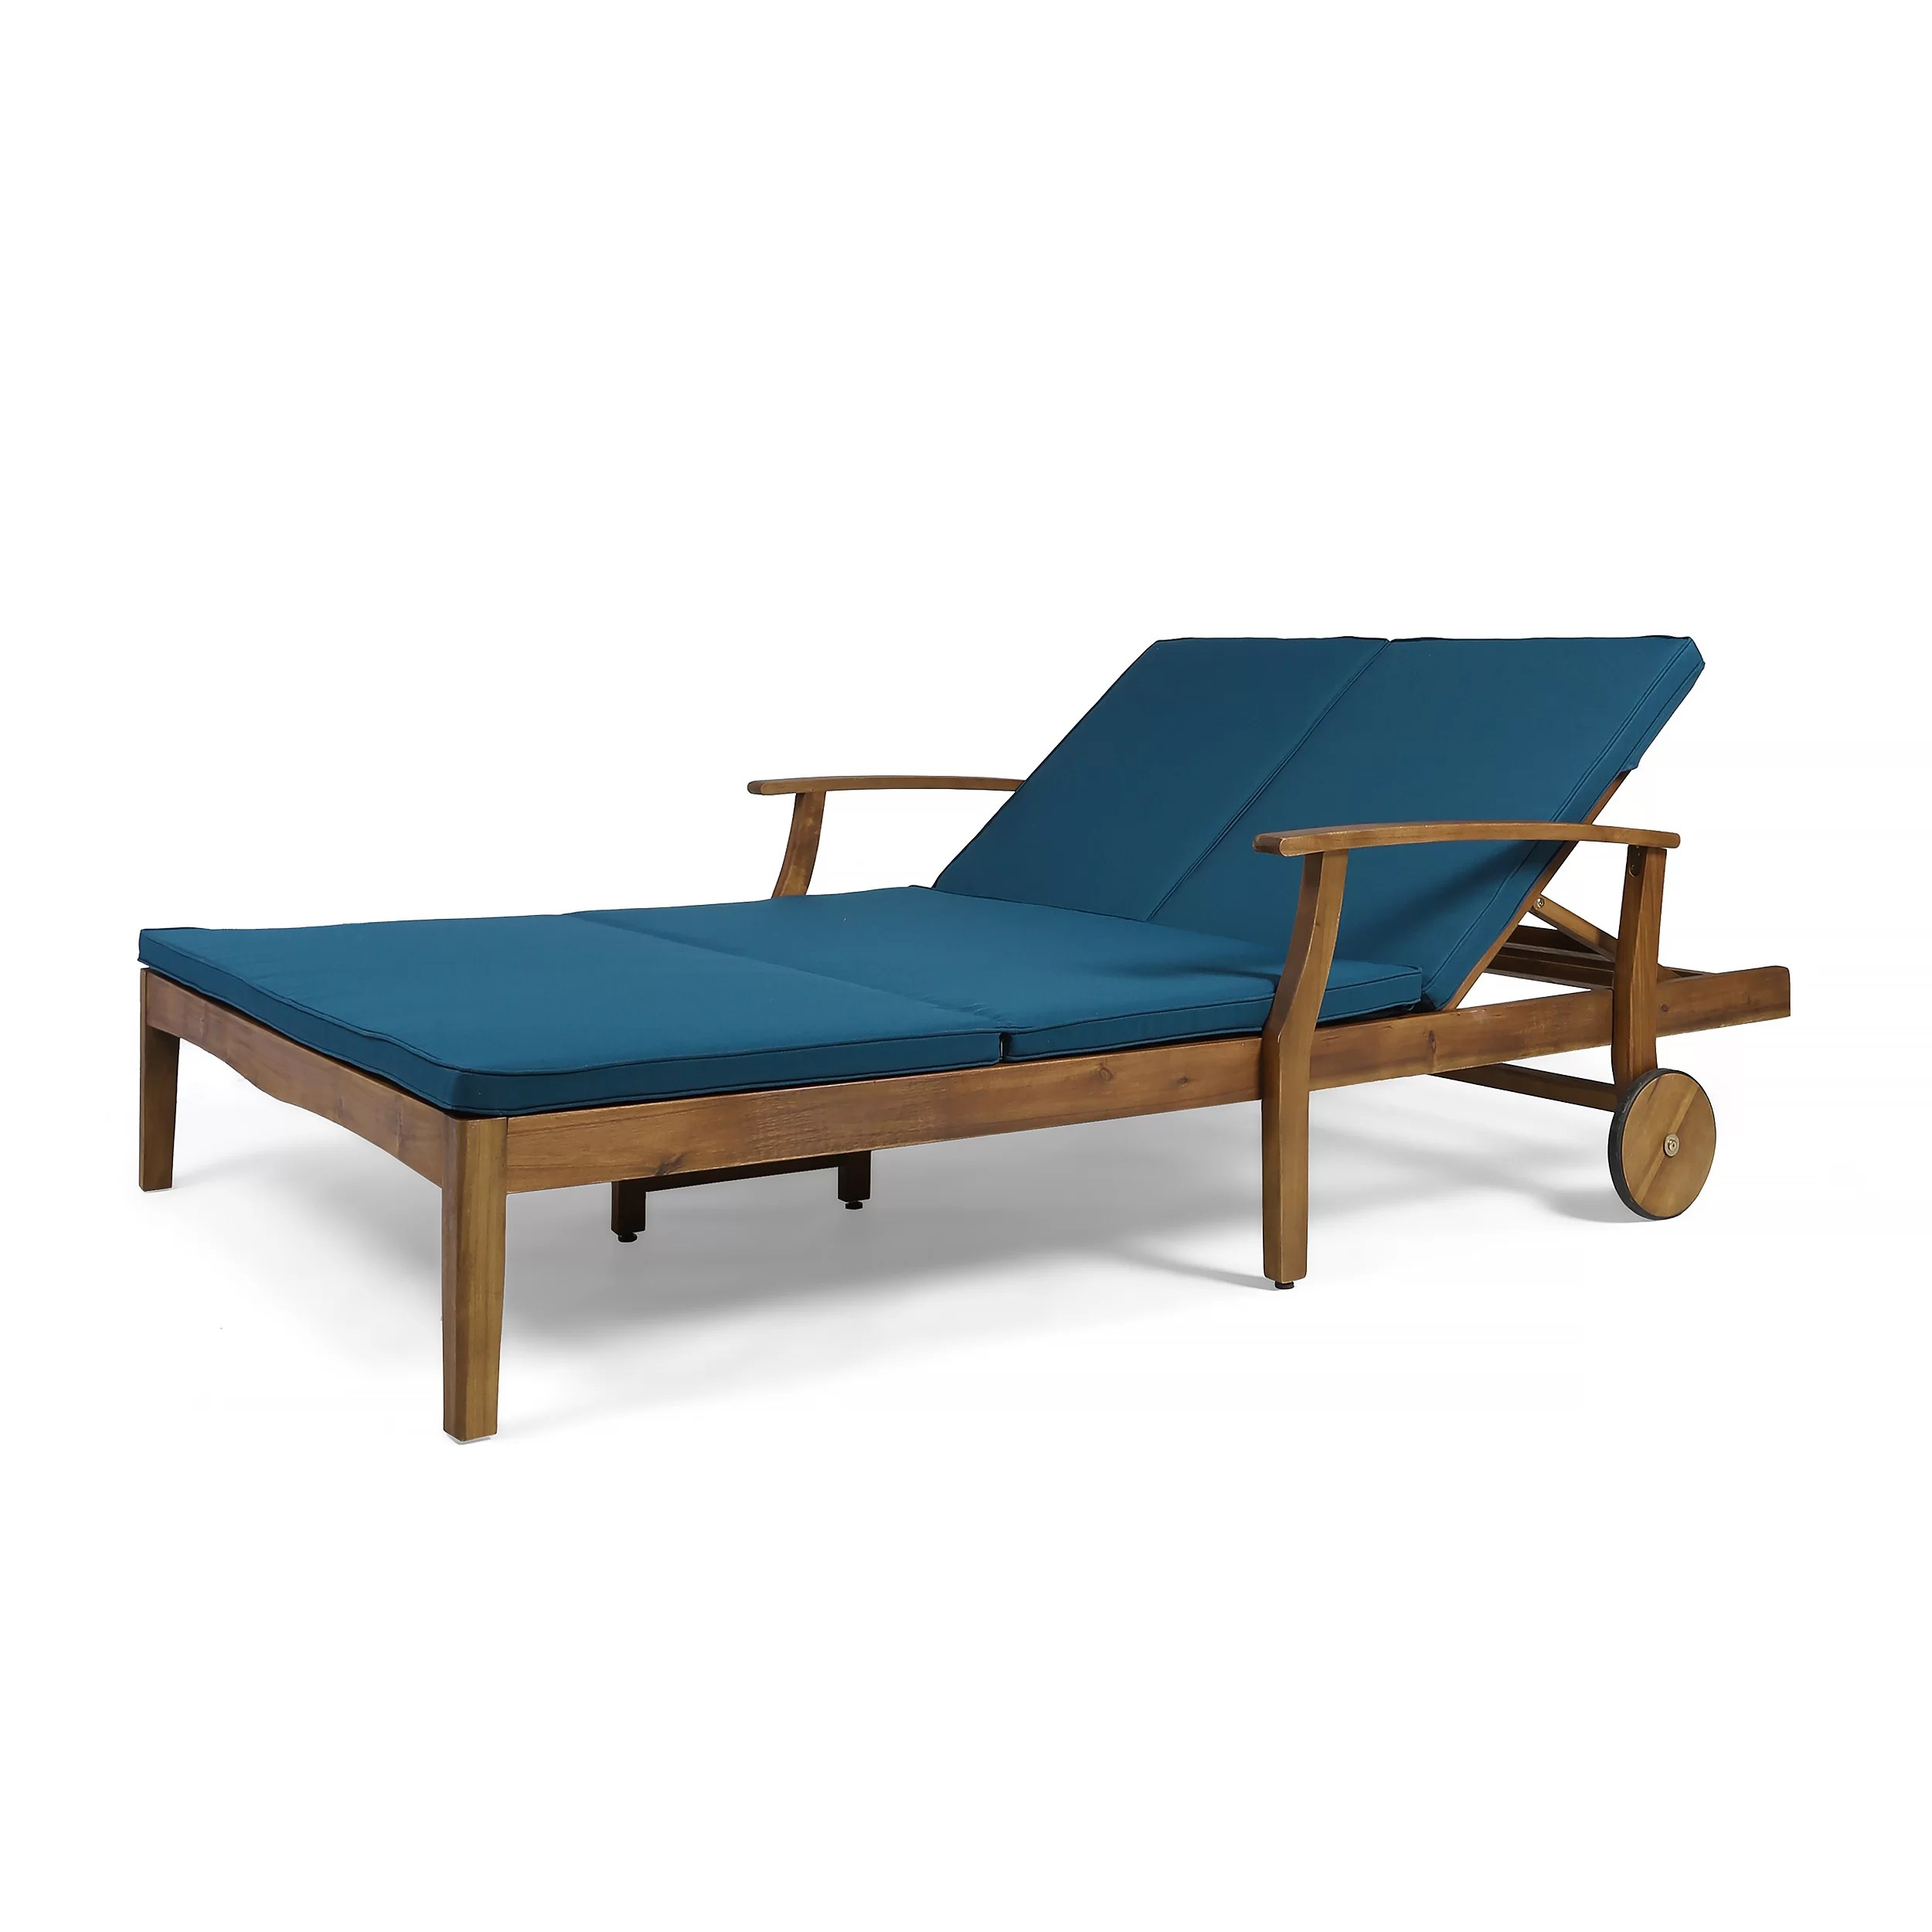 Teak Chaise Lounge Chairs Antonia Double Reclining Teak Chaise Lounge With Cushion